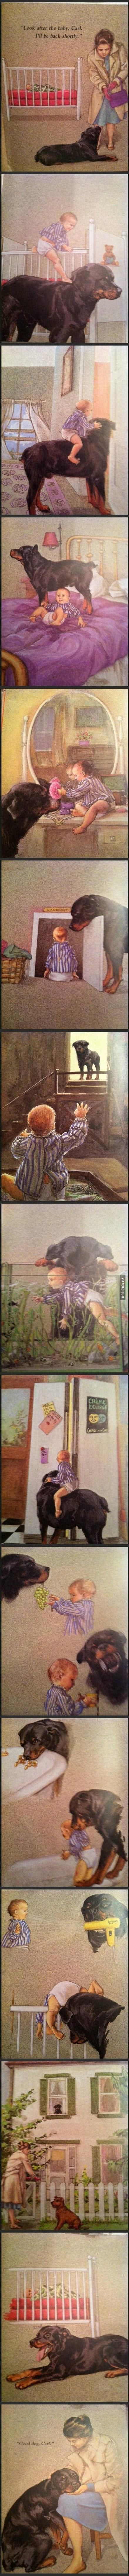 Carl! I forgot all about this book xD I loved it as a kid